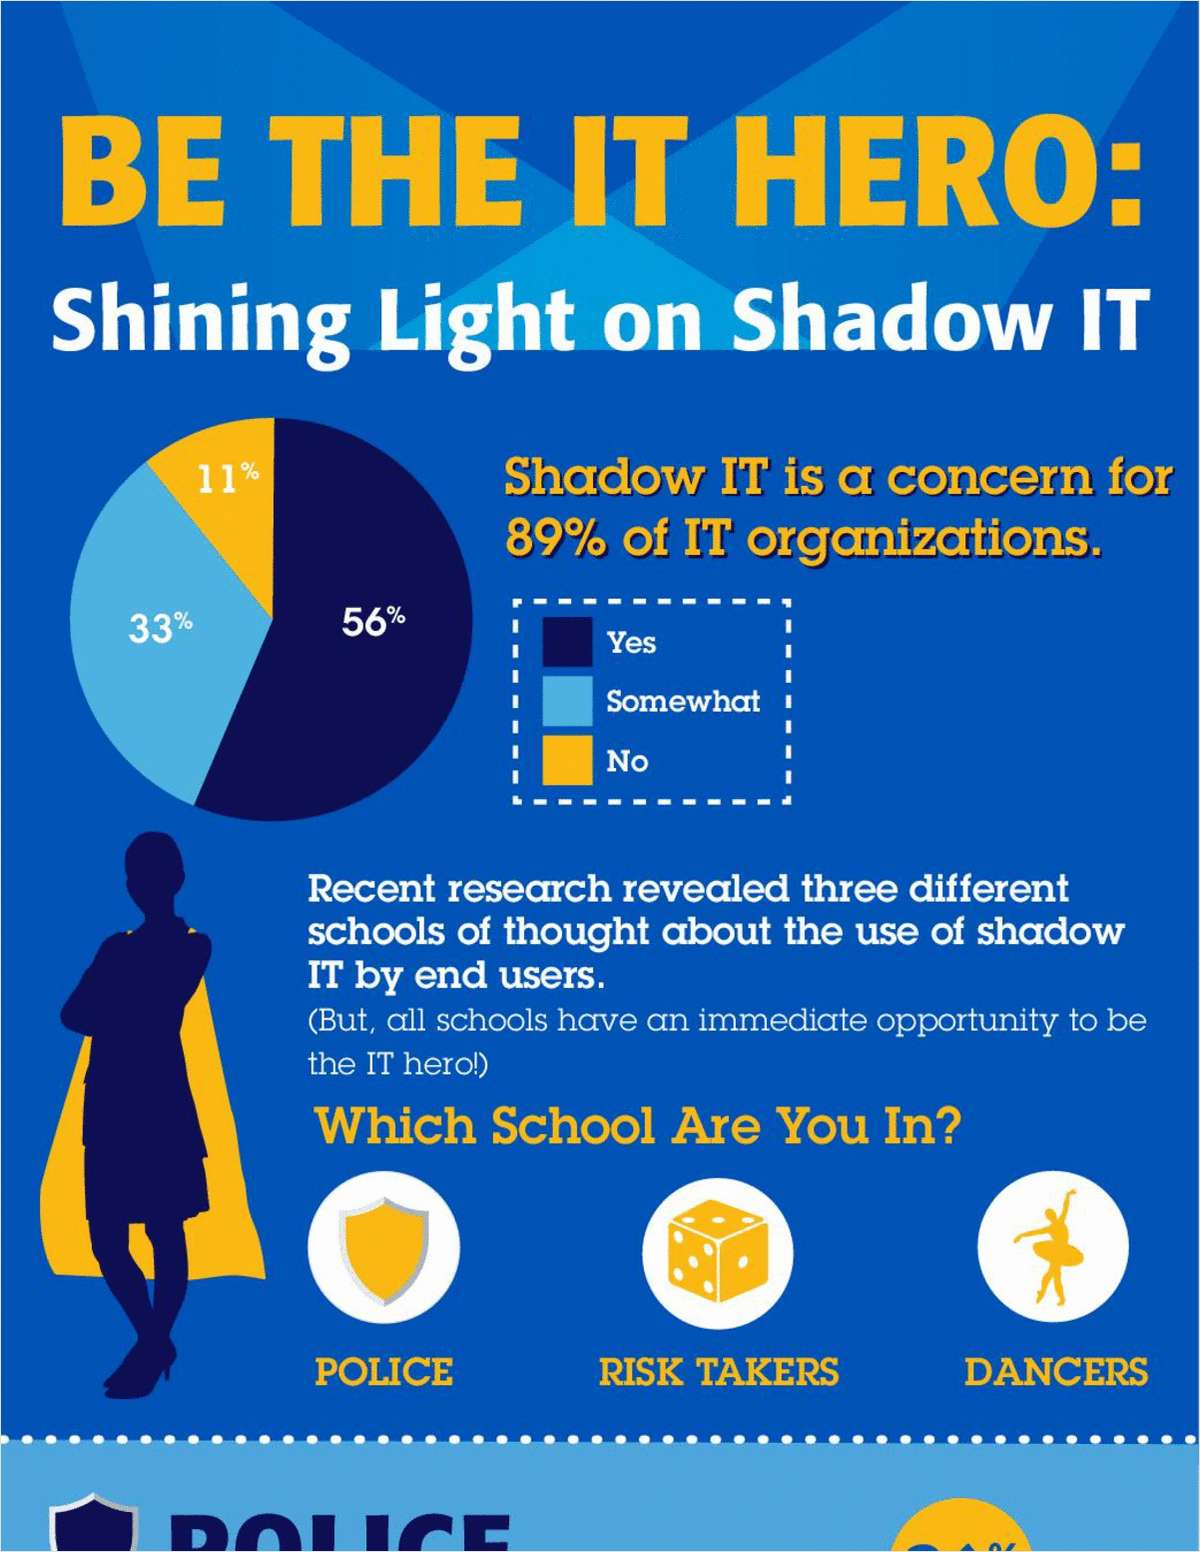 Be the IT Hero: Shining Light on Shadow IT